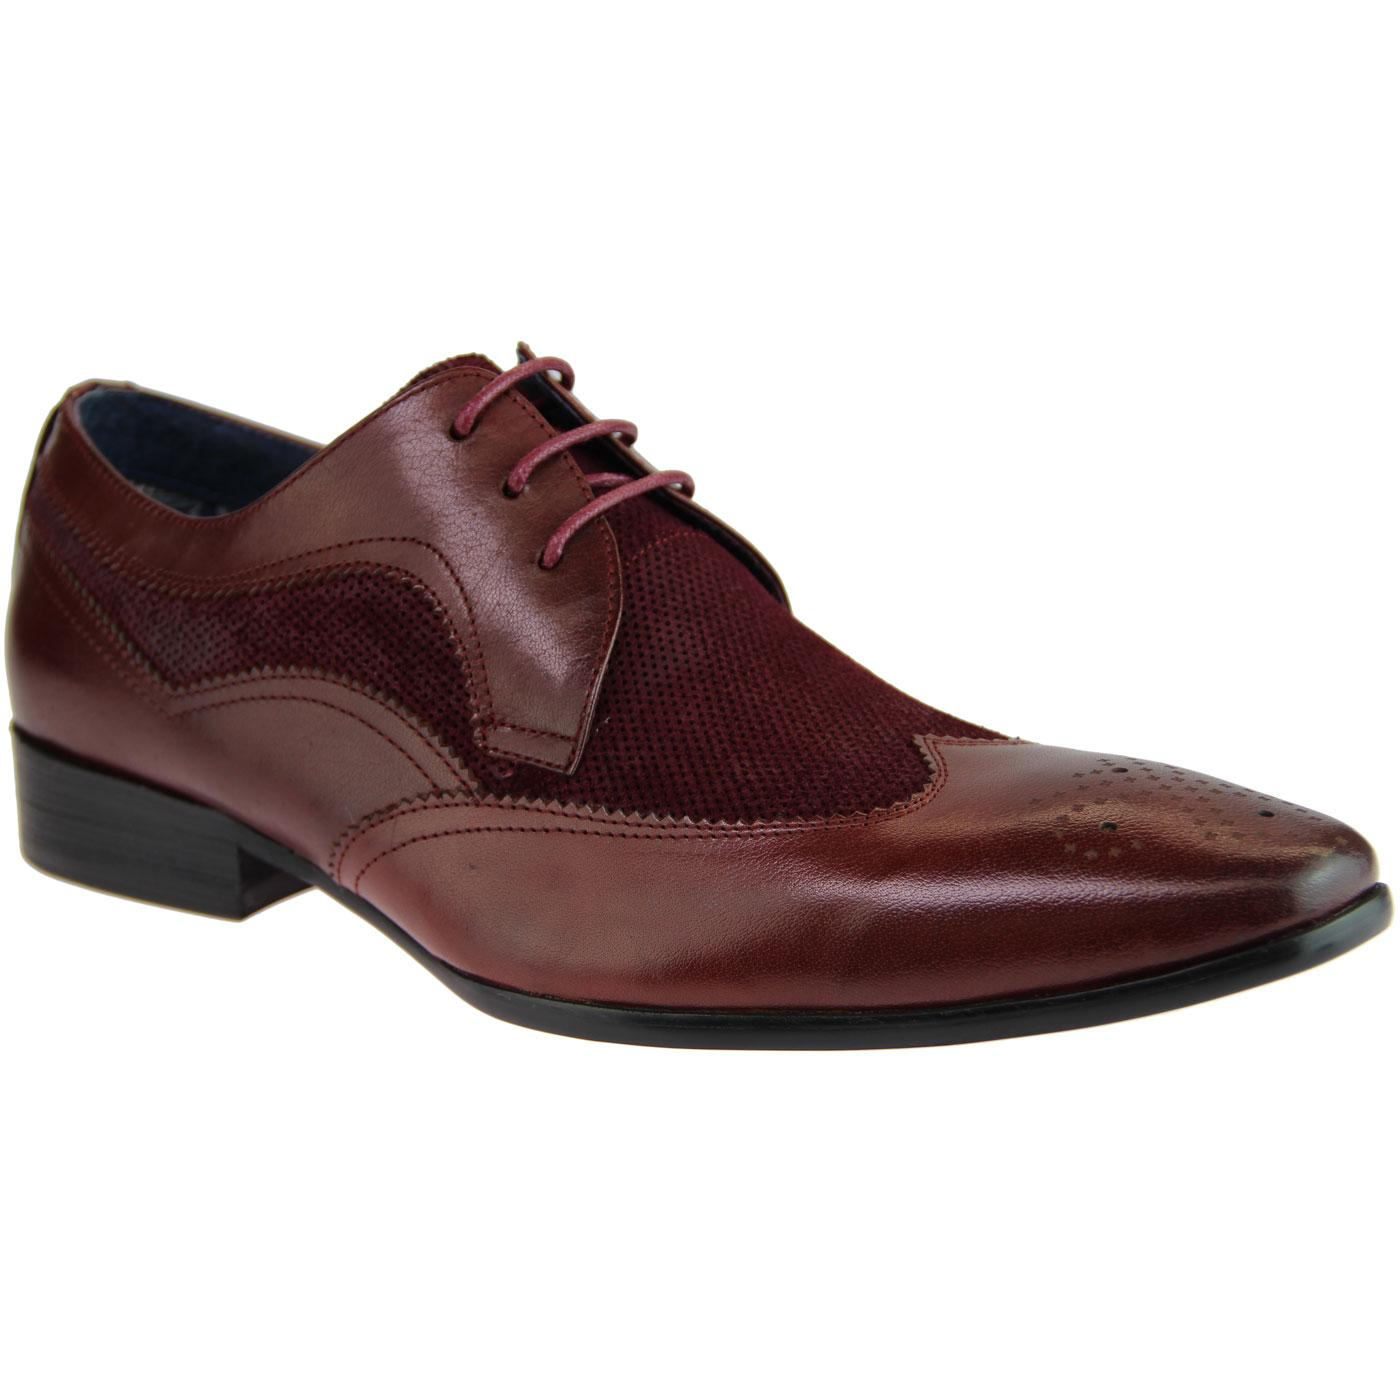 Chesney PAOLO VANDINI Retro Wingtip Brogues WINE